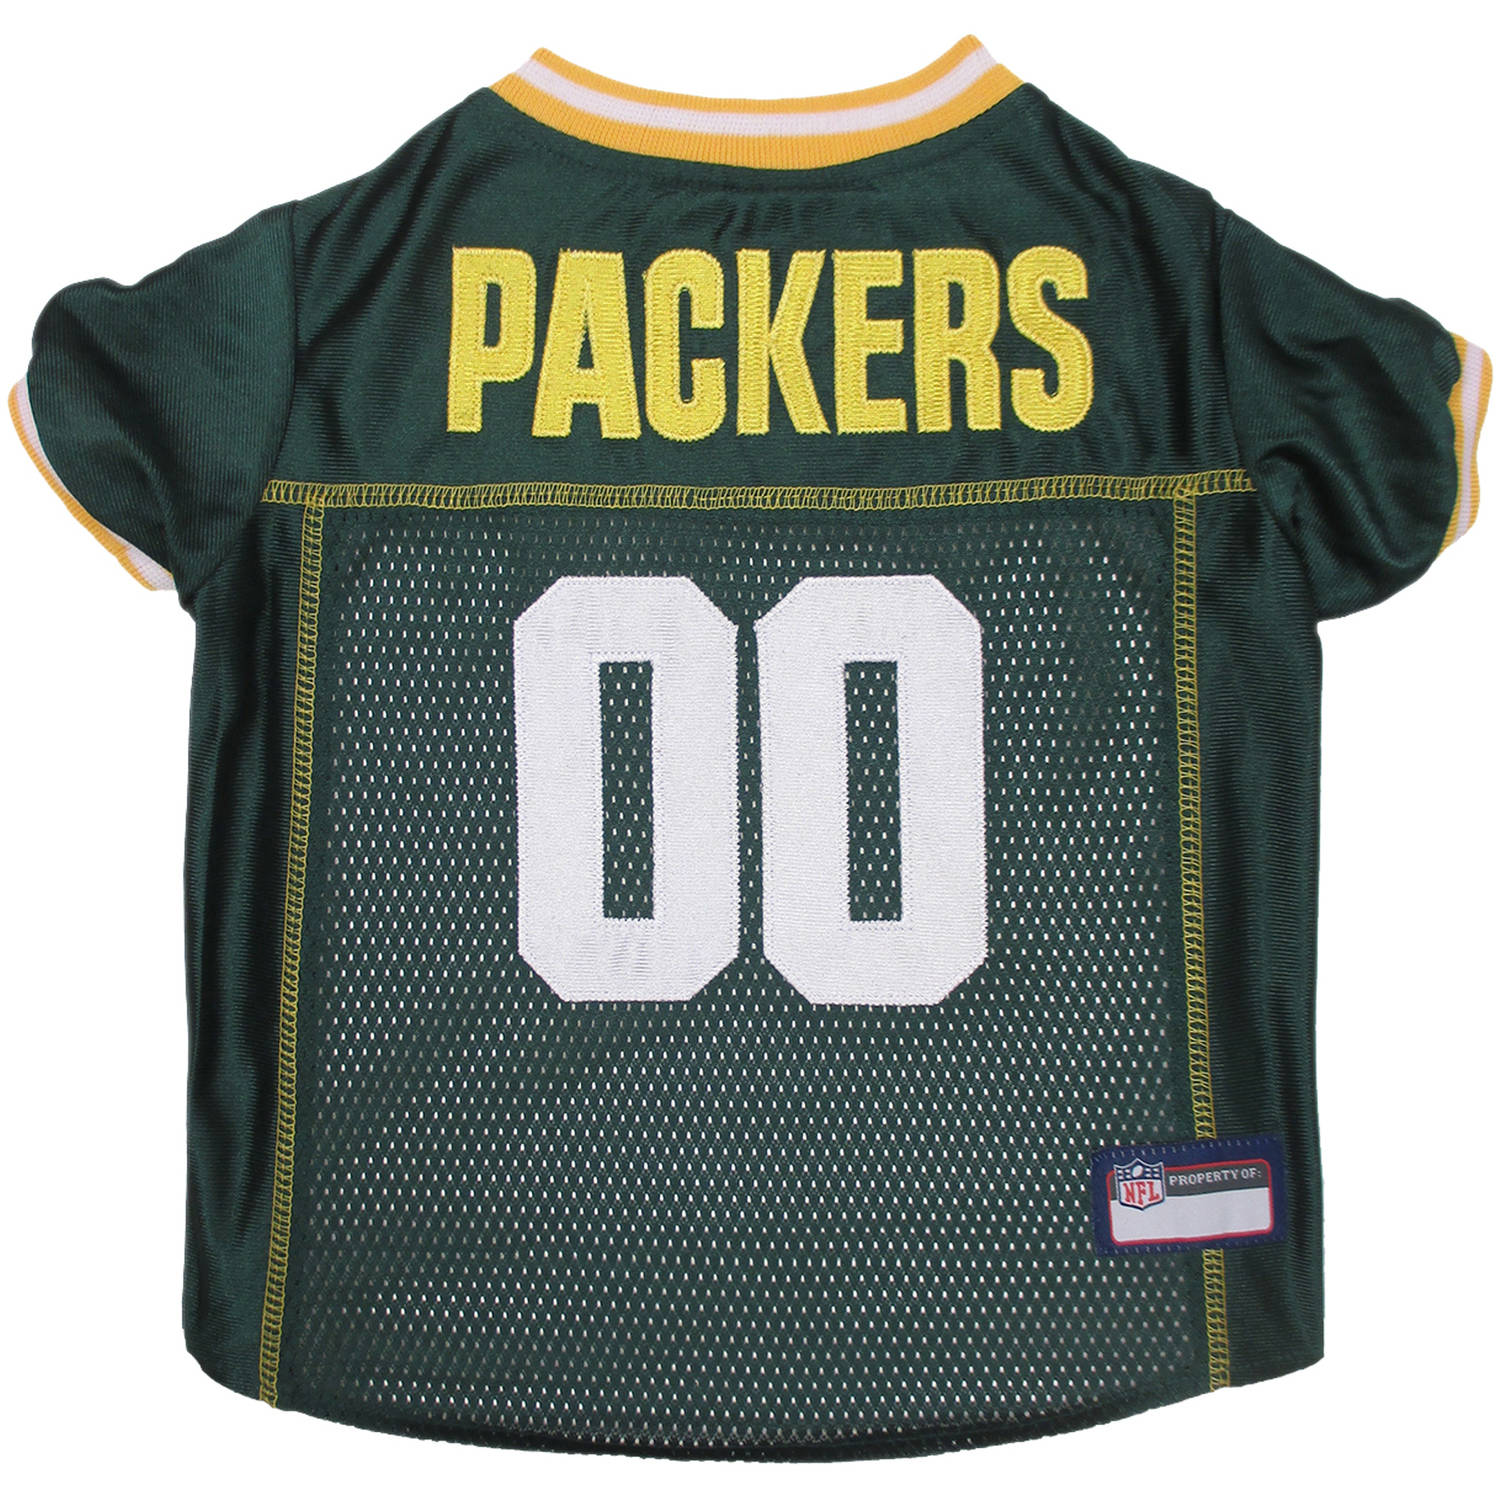 Pets First NFL Green Bay Packers Premium Dog Jersey, 4 Sizes Available